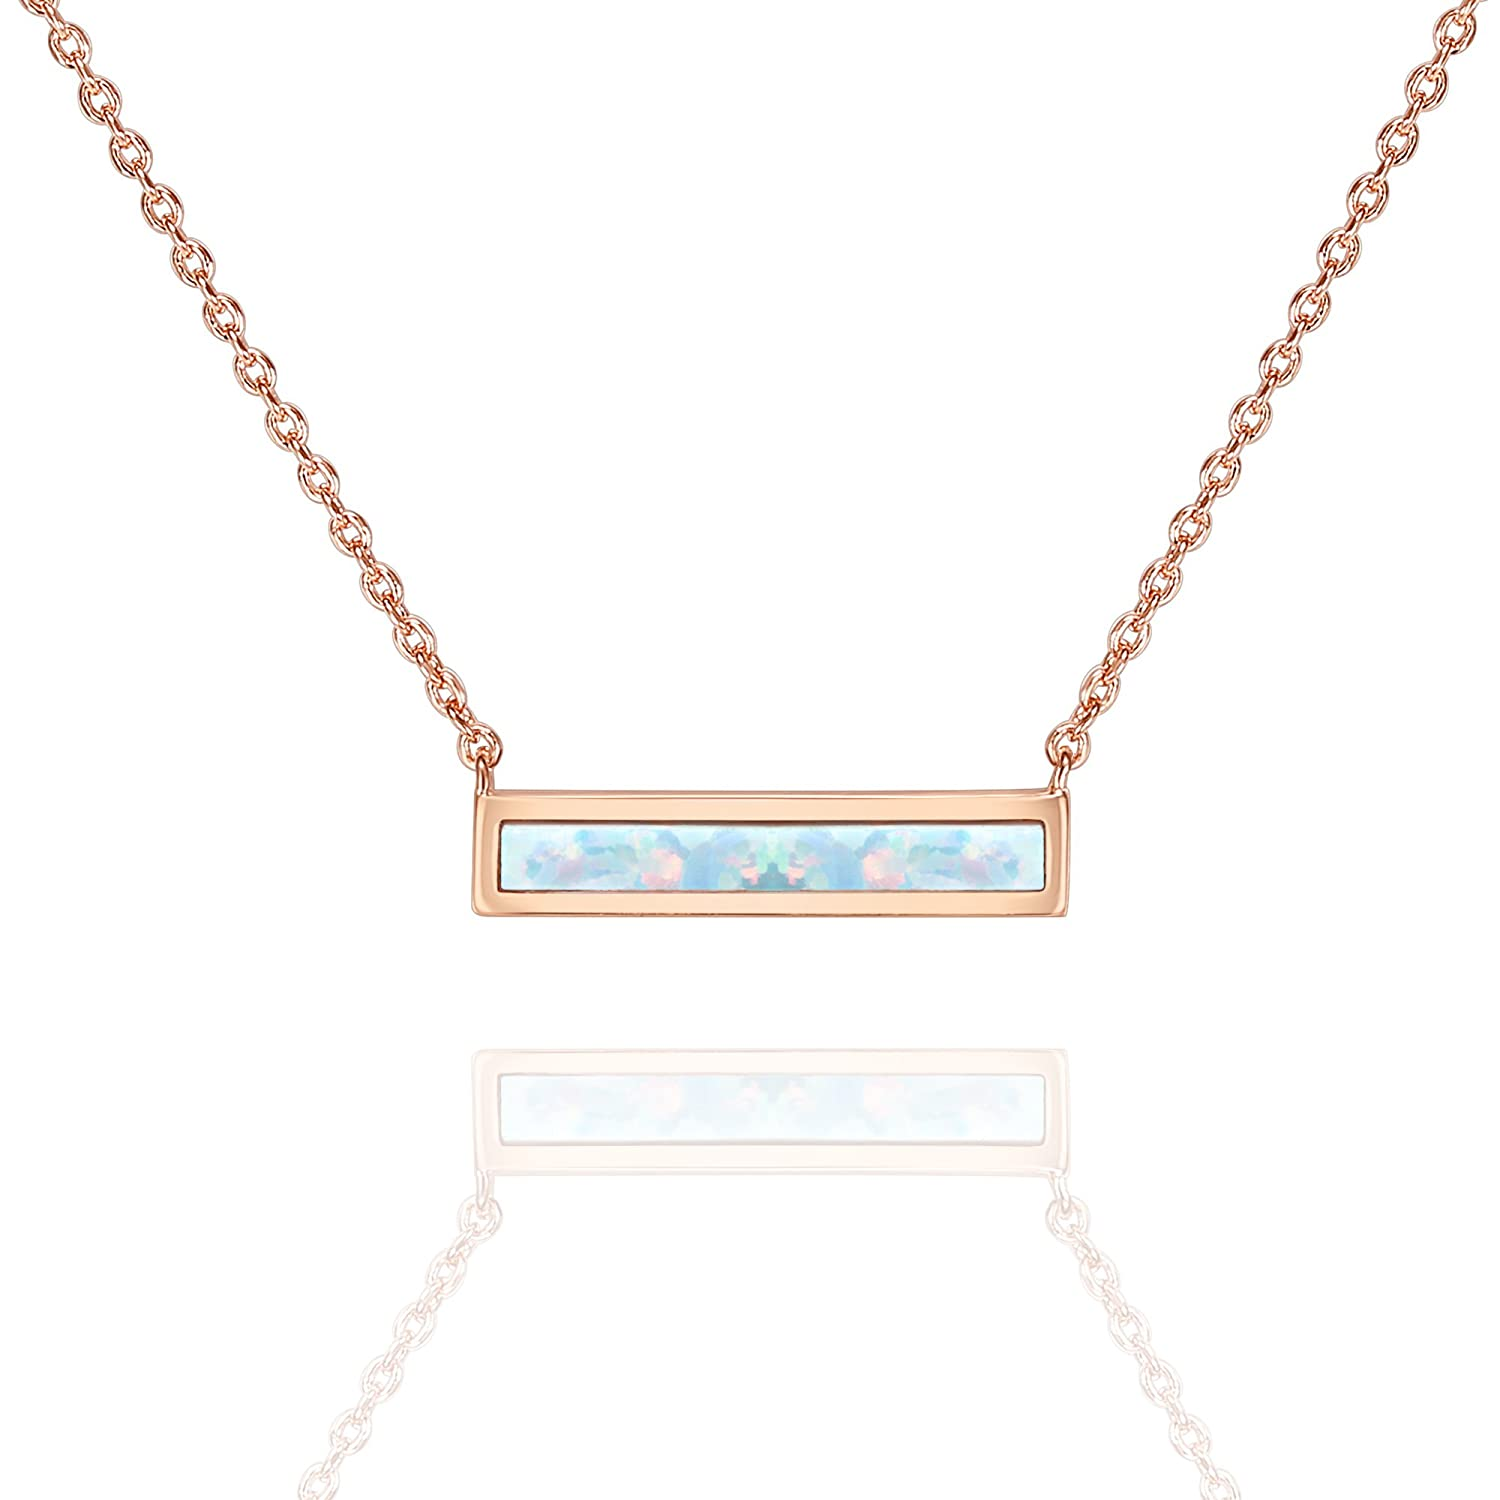 PAVOI 14K Gold Plated Thin Bar Green/White Created Opal Necklace Pendant 16-18 TC11-LB